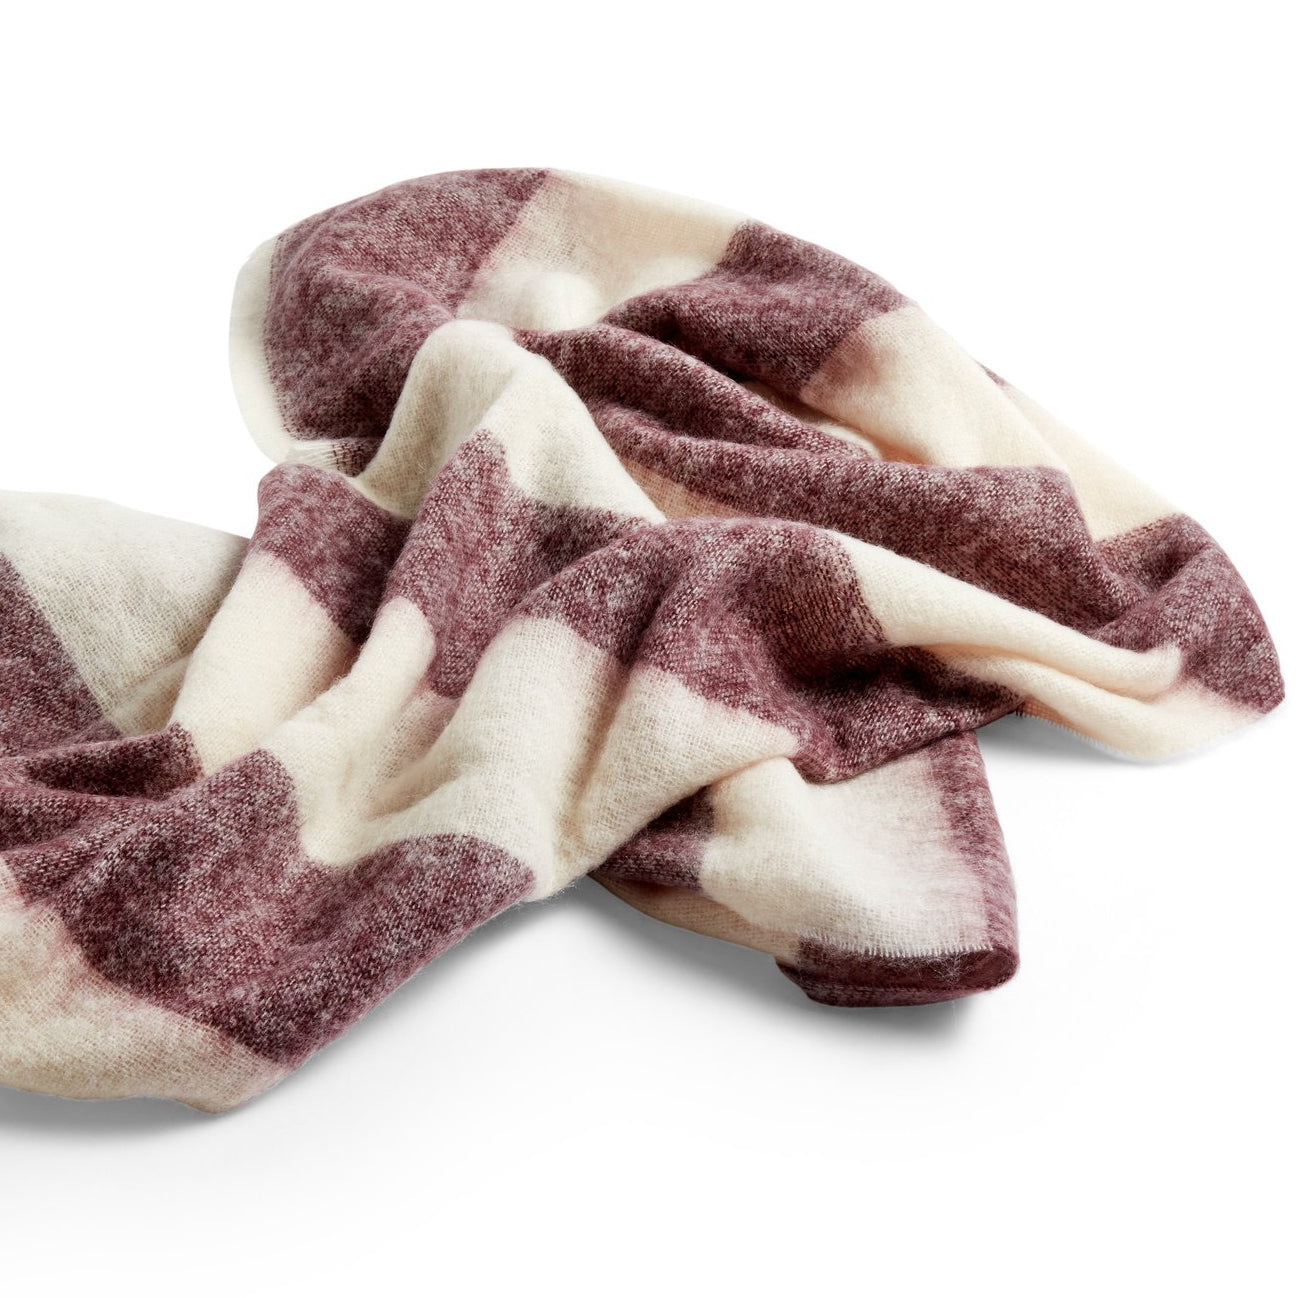 HAY Mohair Blanket: Burgundy - The Union Project